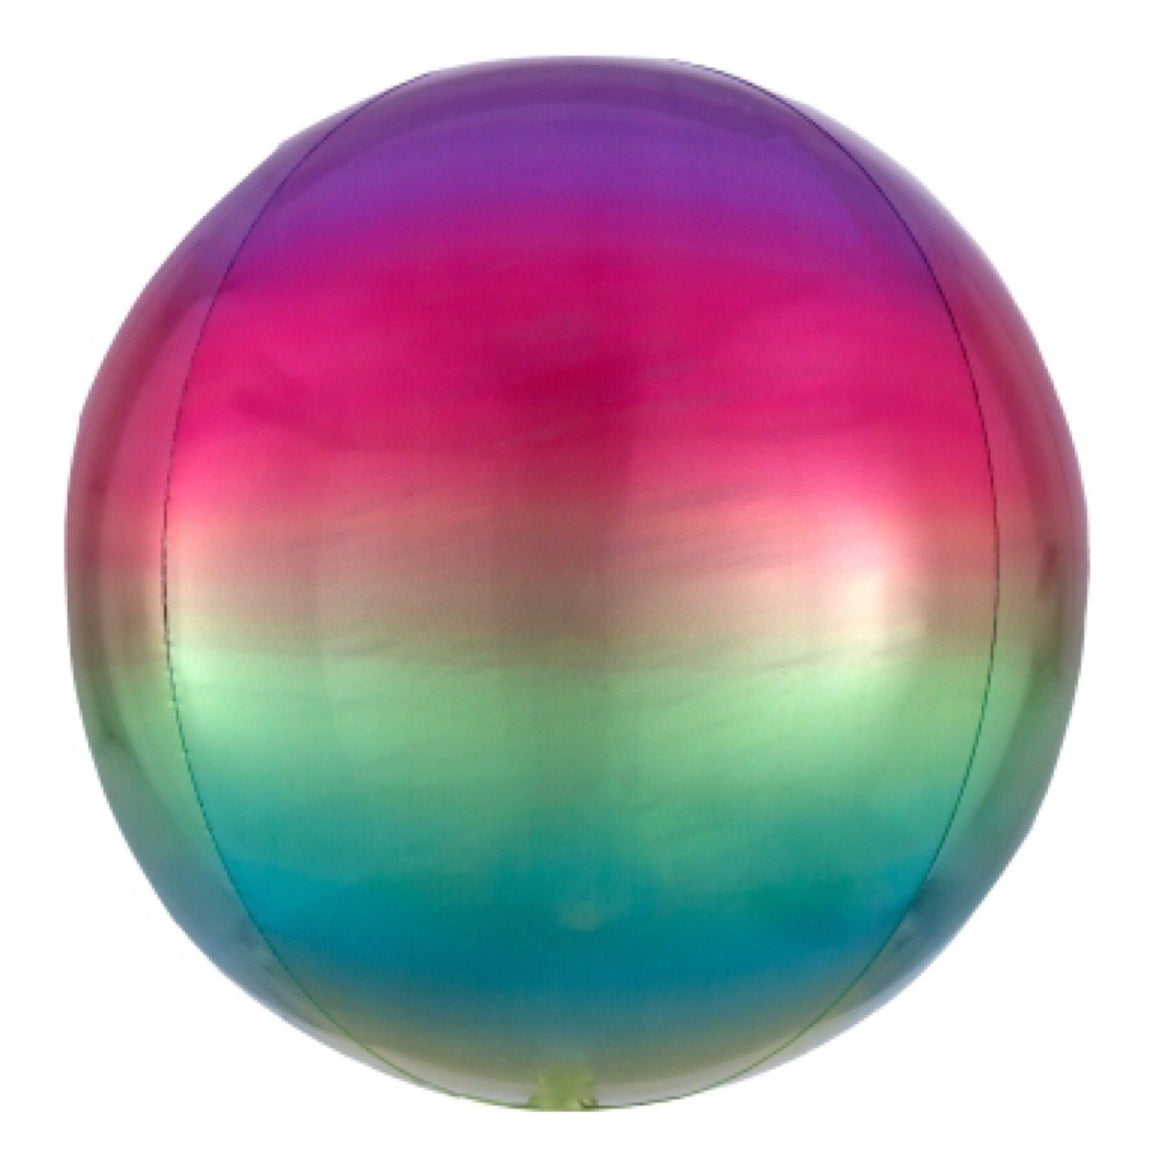 "BALLOON BAR - 16"" ORBZ ROUND OMBRE RAINBOW, Balloons, Anagram - Bon + Co. Party Studio"